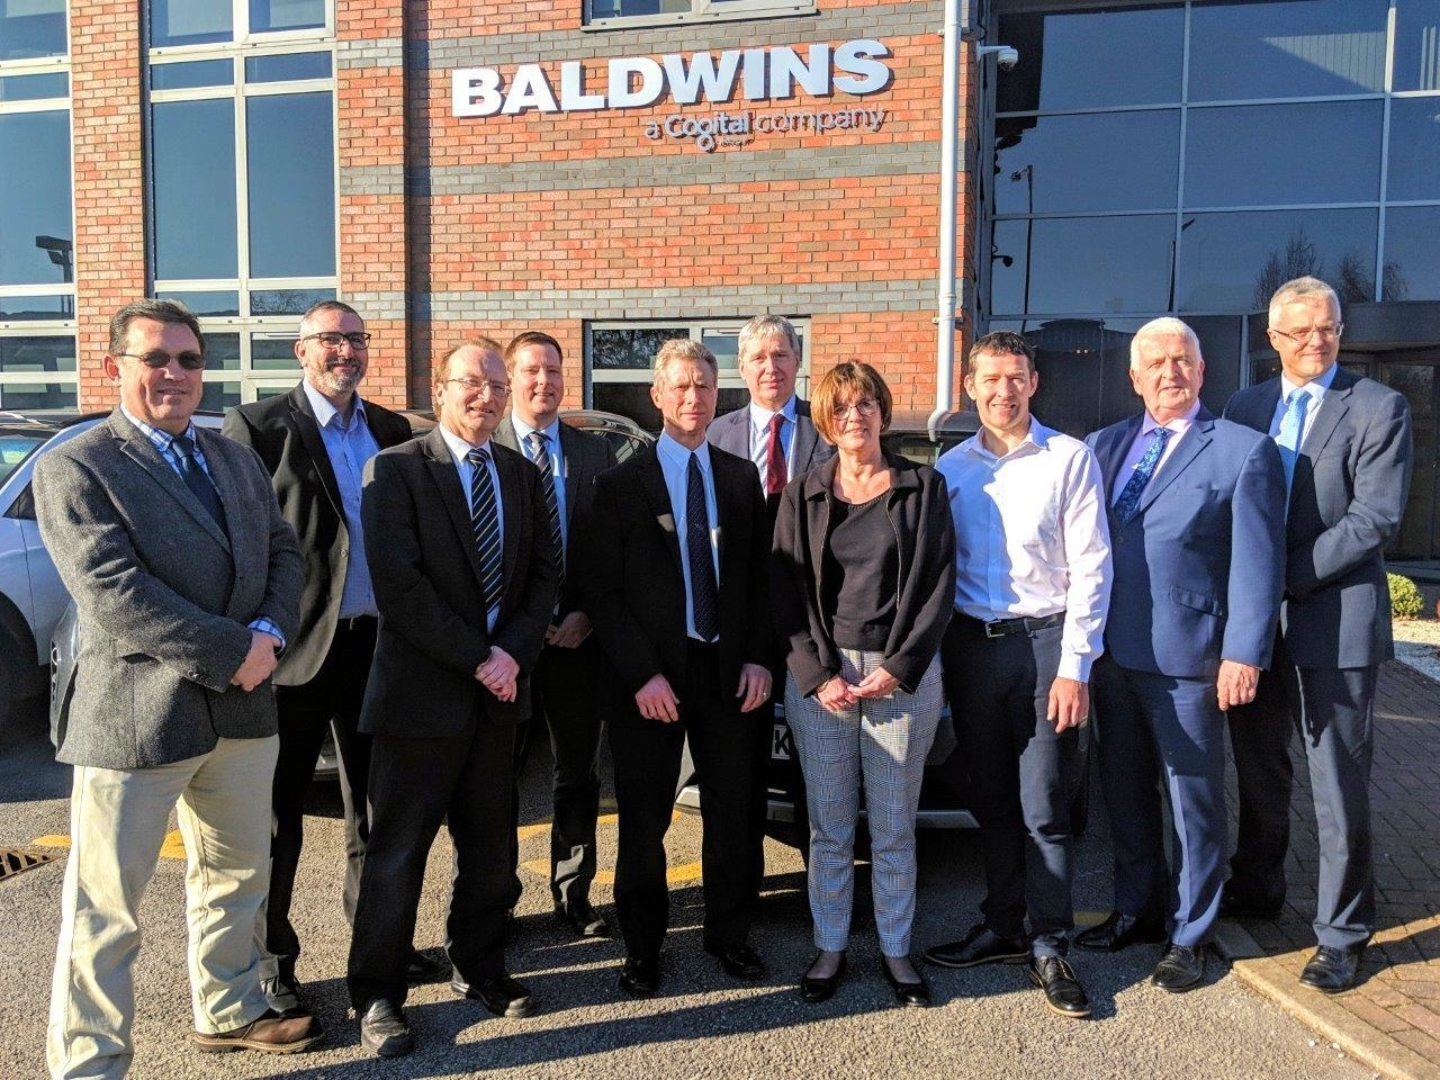 Leading Partnerships: Gary Brockway, Baldwins